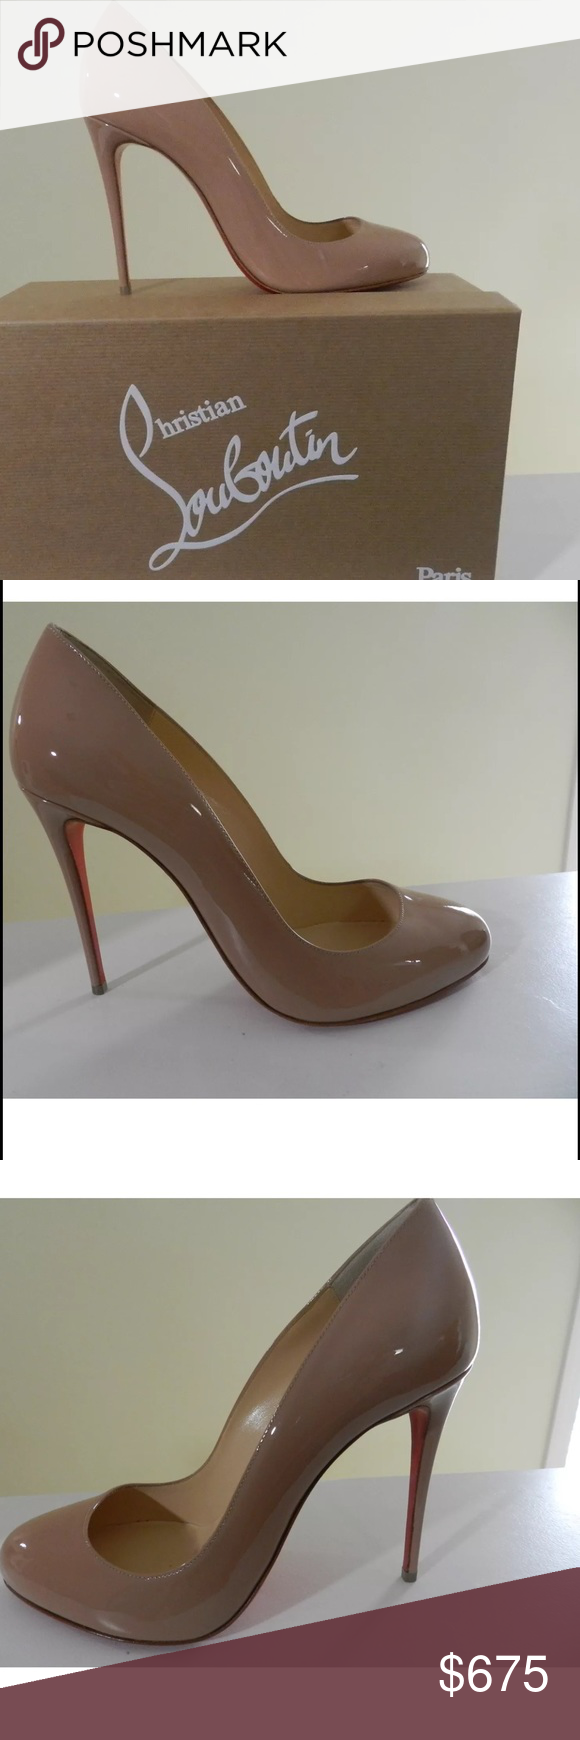 "Christian Louboutin nude patent leather pump 37 NEW! With protective bottom!! 4.25"" covered heel, Round toe. Low-dipped vamp. Topstitched collar. Signature red leather outsole. ""Dorissima"" is made in Italy. Absolutely new in box and dust cloth Size 37 US 7.  Insole Heel to toe: 9.5"" Width: 3"" Get them here & you won't have to pay tax & you get the protective bottom free (my cost was $45). YAY!! I'll even send the receipt from Barneys if requested. Christian Louboutin Shoes Heels"